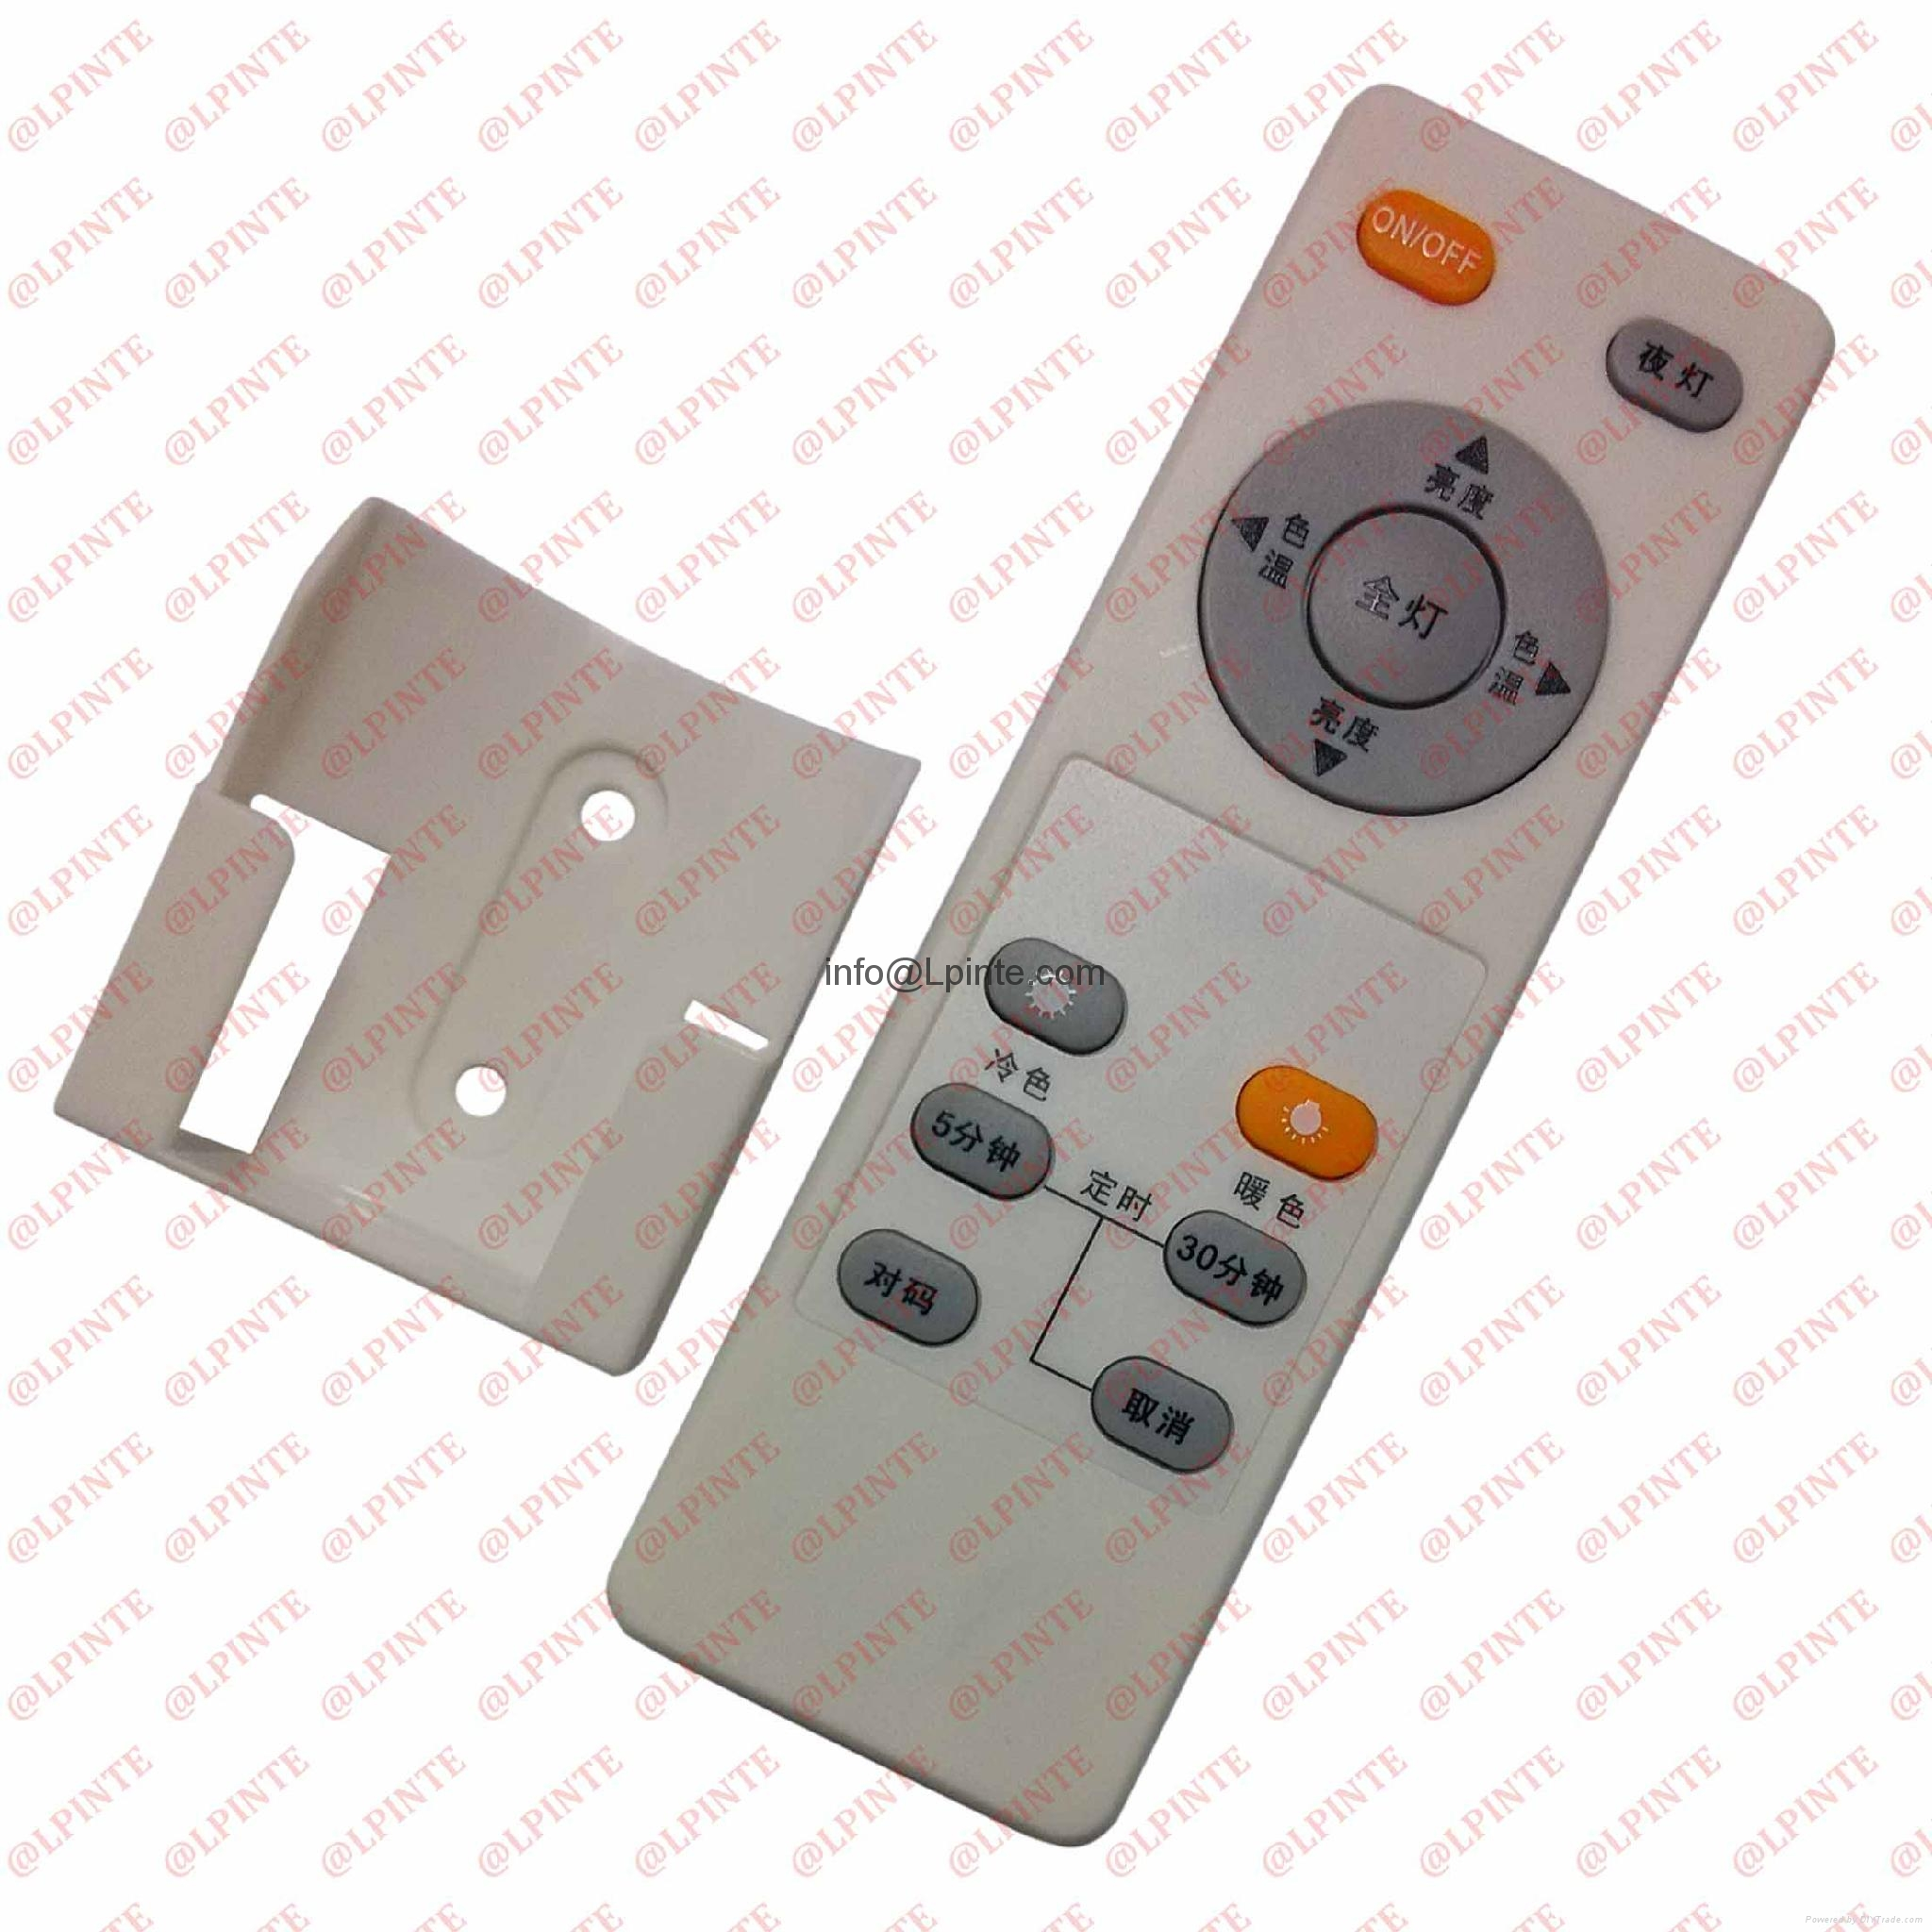 audio media tv remote control 7 keys rubber botton with holder LPI-R07B 3